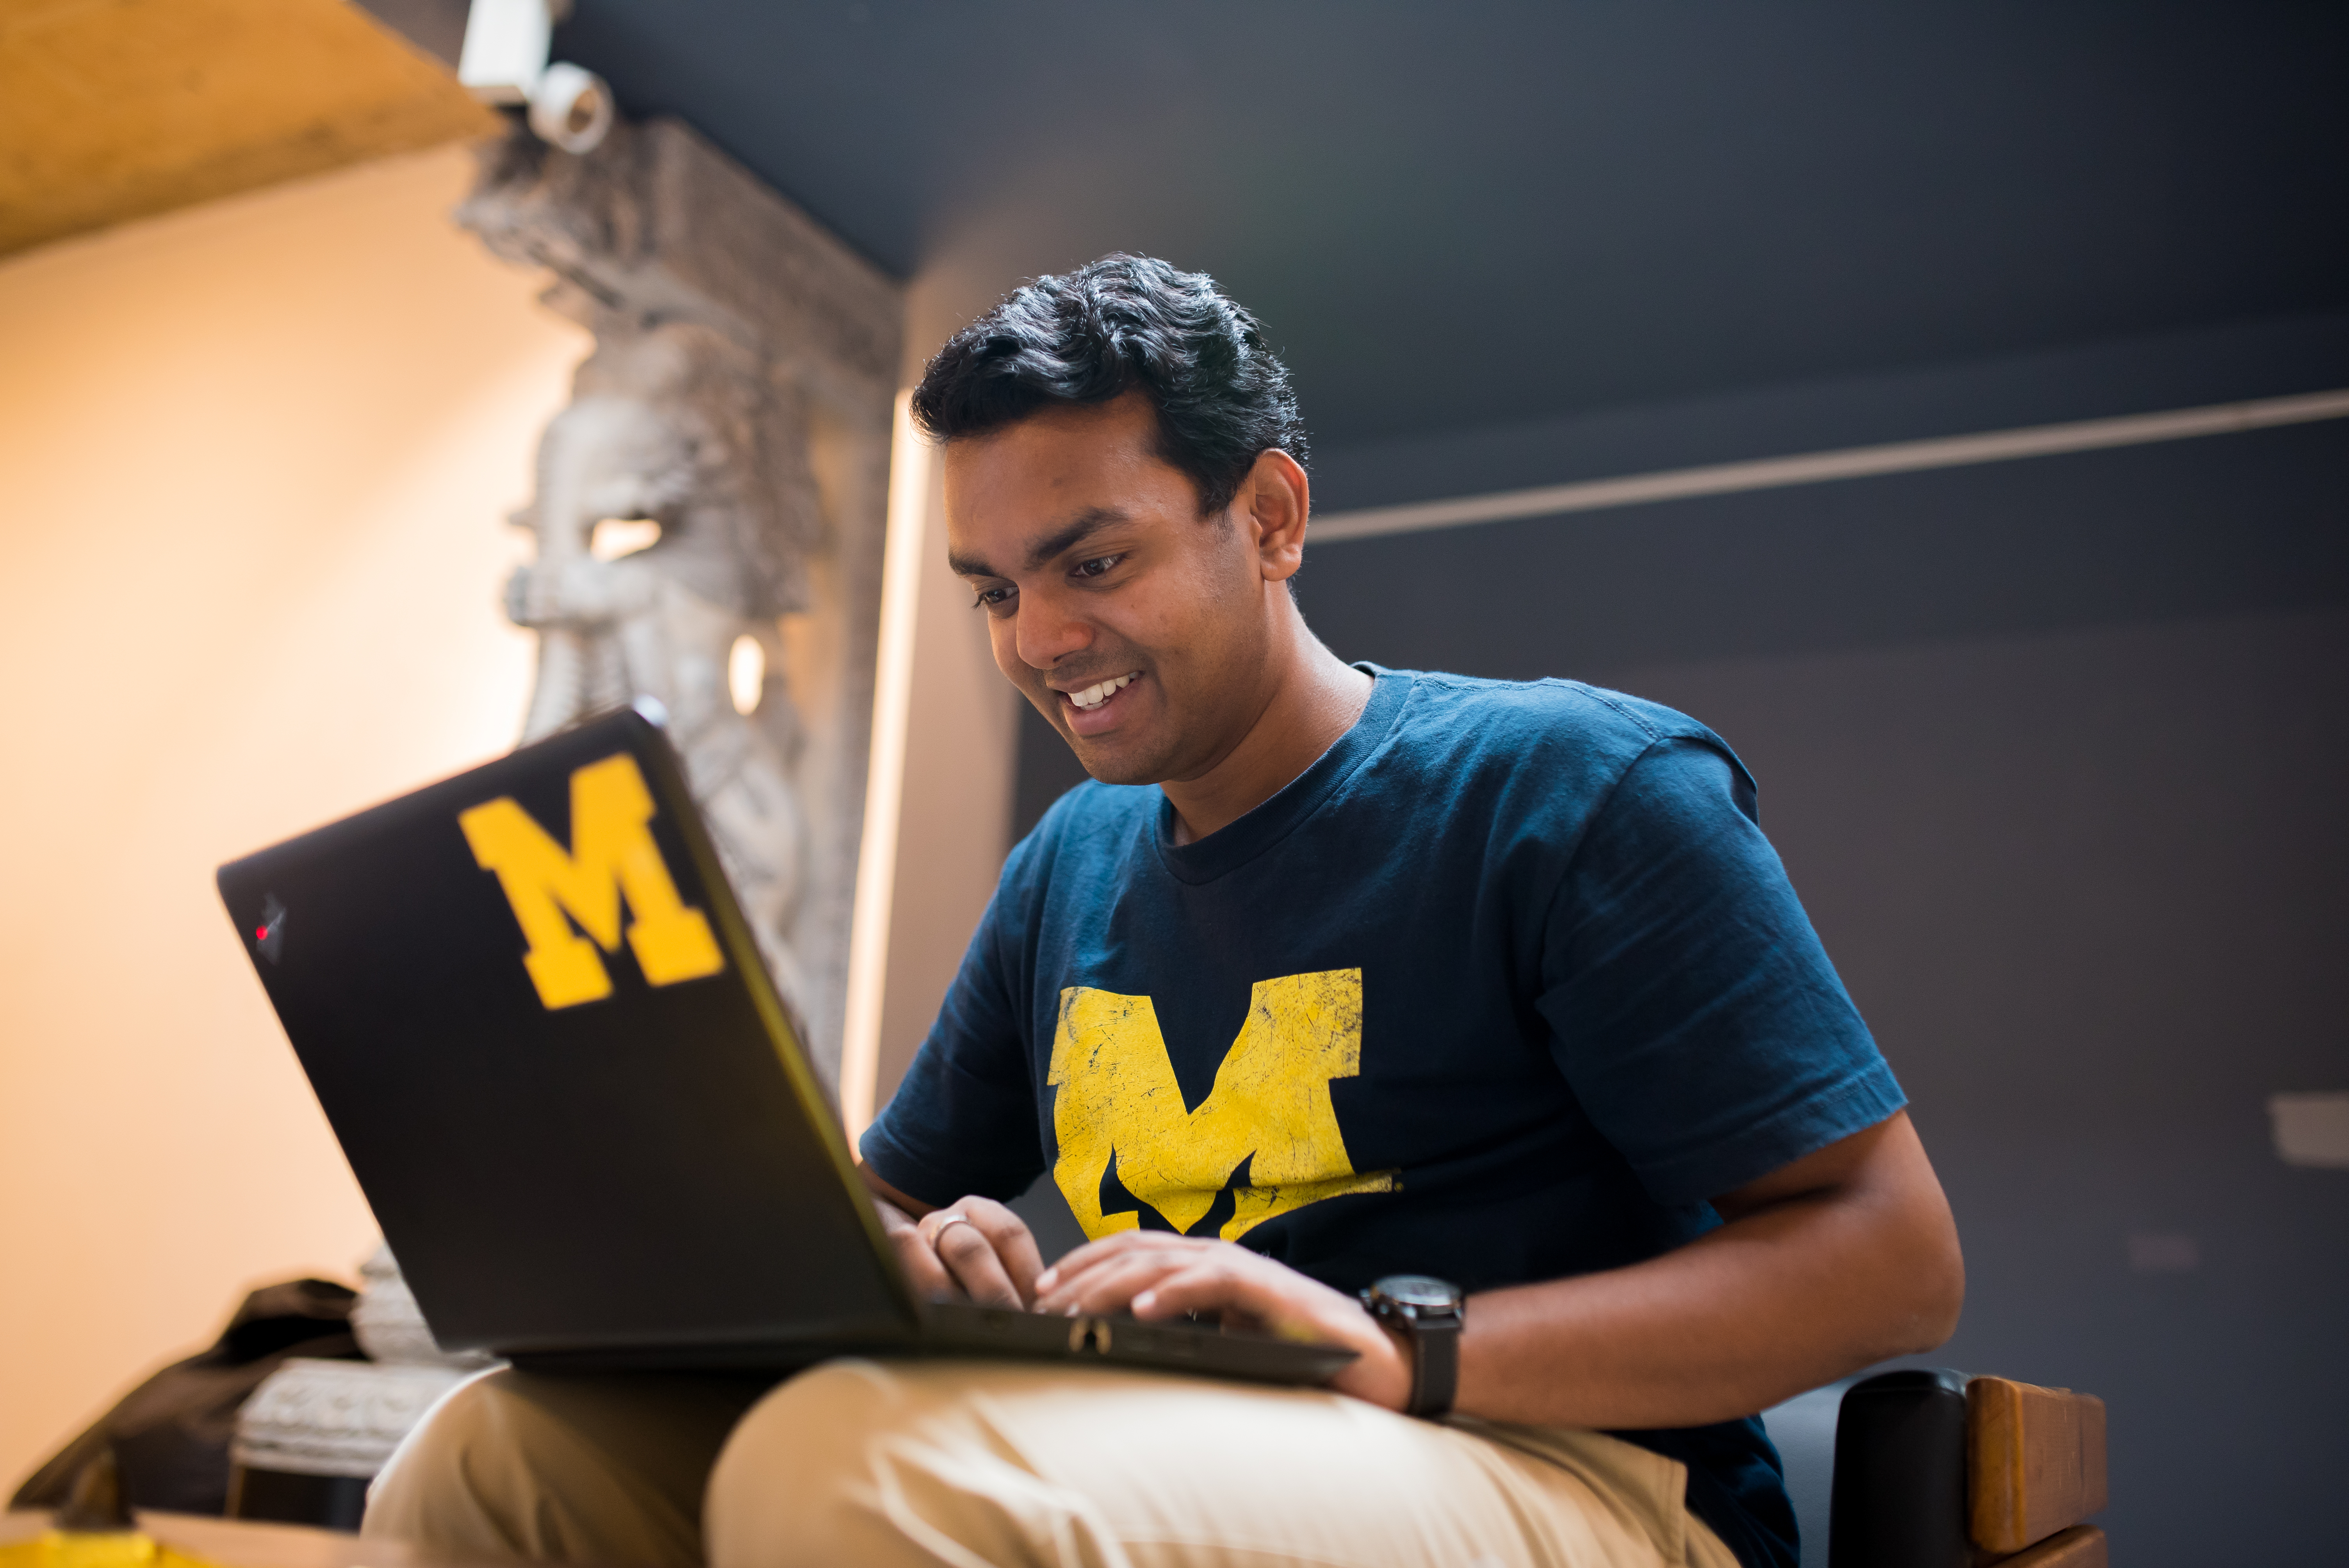 ANYWHERE INTERN—While many institutions are just beginning to dabble in setting up remote internships for students, University of Michigan is hiring a staffer whose central responsibility will be managing virtual opportunities.